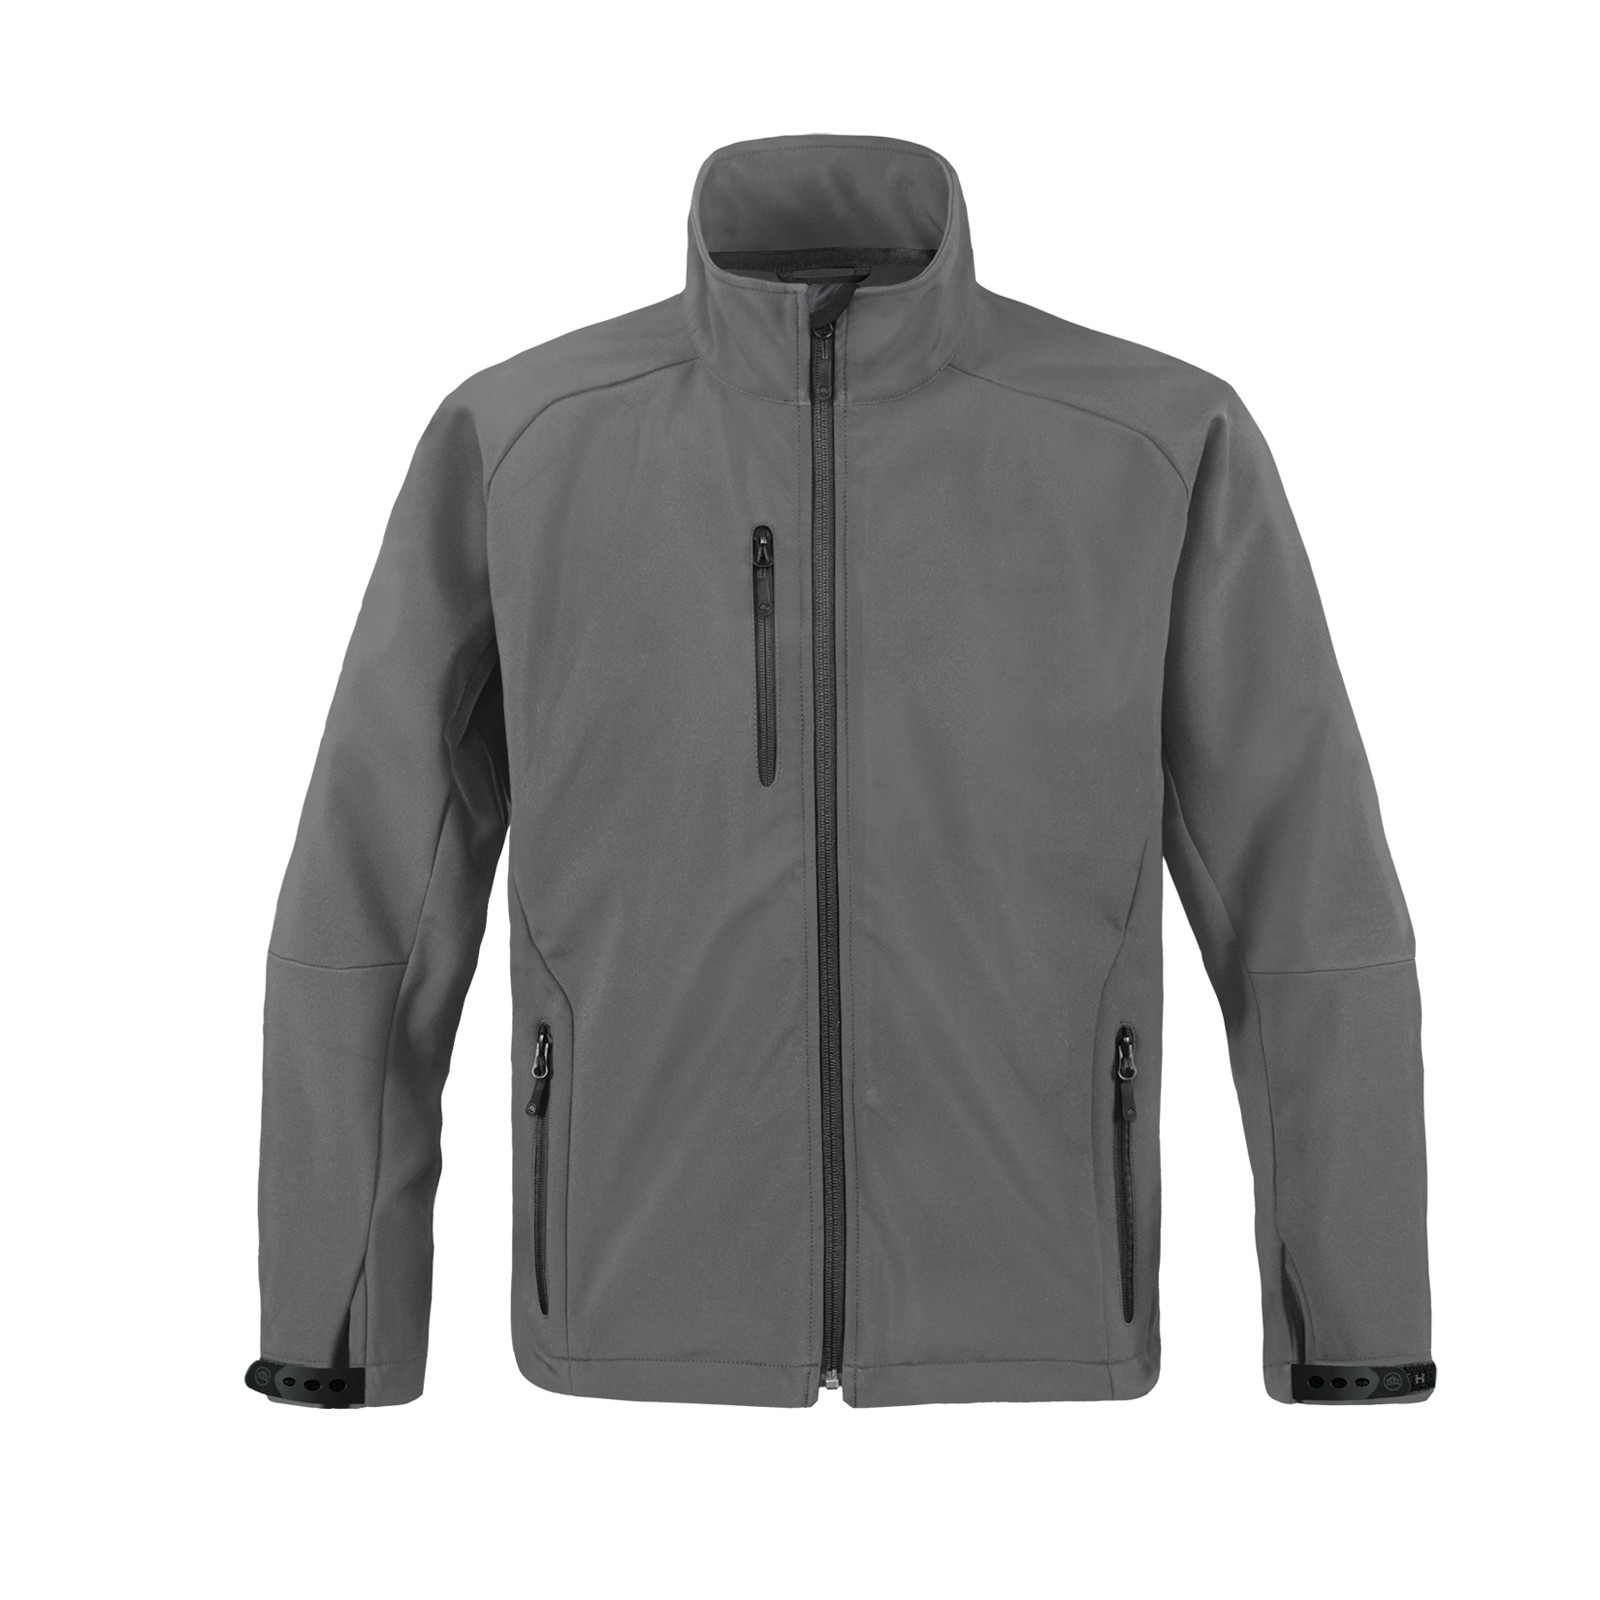 ST785 Lightweight sewn waterproof/breathable softshell